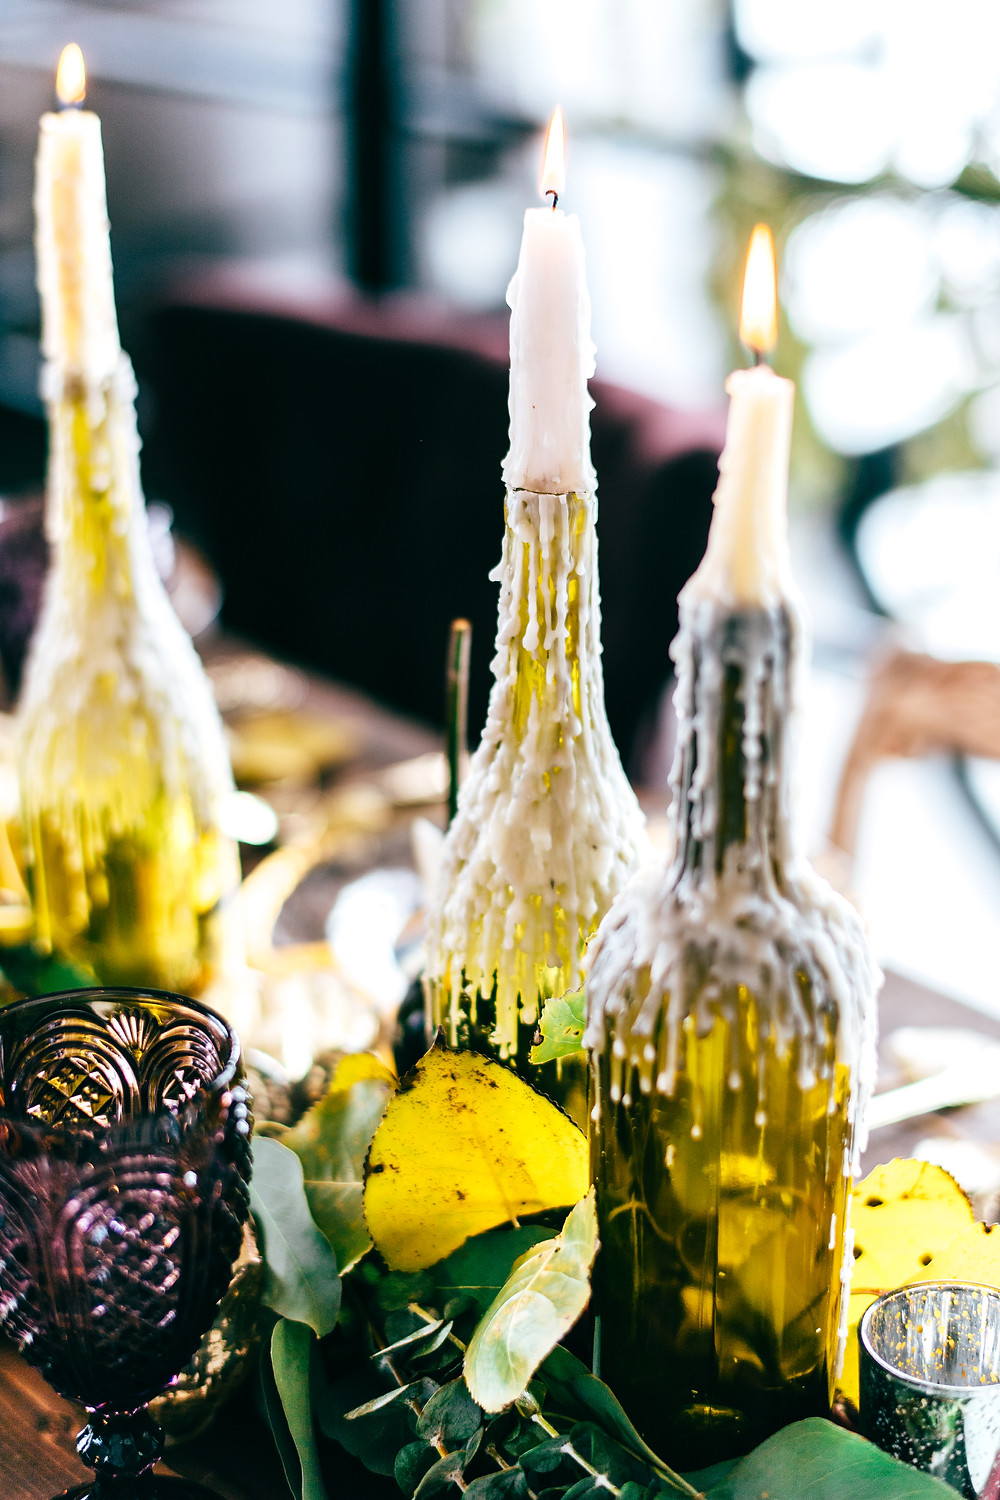 Dark & Moody Post-Apocalyptic Wedding Tablescape with Wax Dripped Wine Bottle Candle Holders